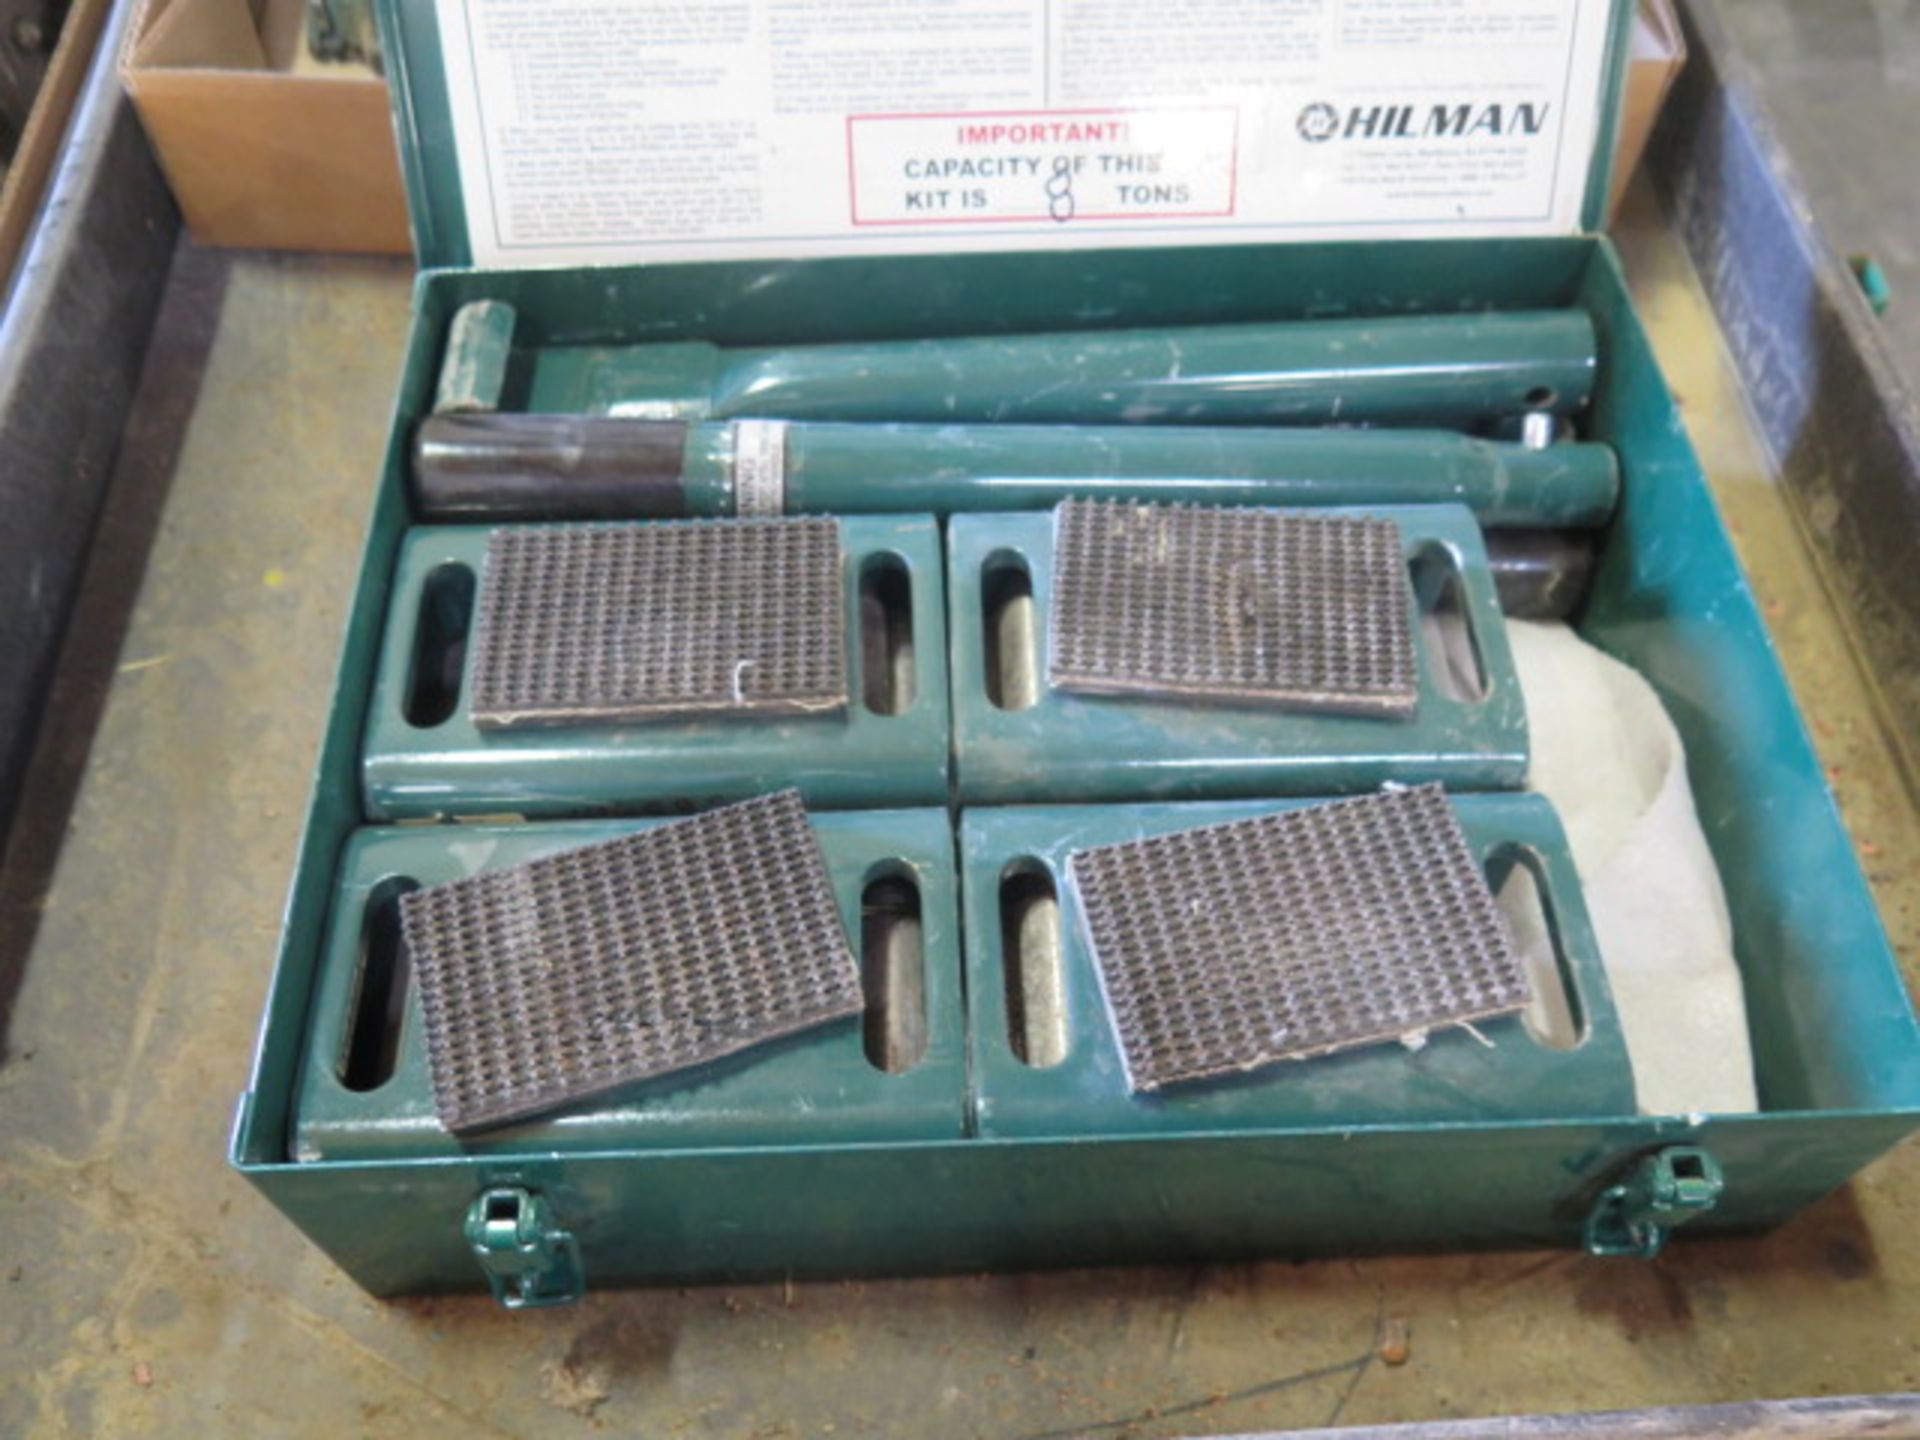 Hilman 8-Ton Machinery Dolley Set (SOLD AS-IS - NO WARRANTY) - Image 3 of 8